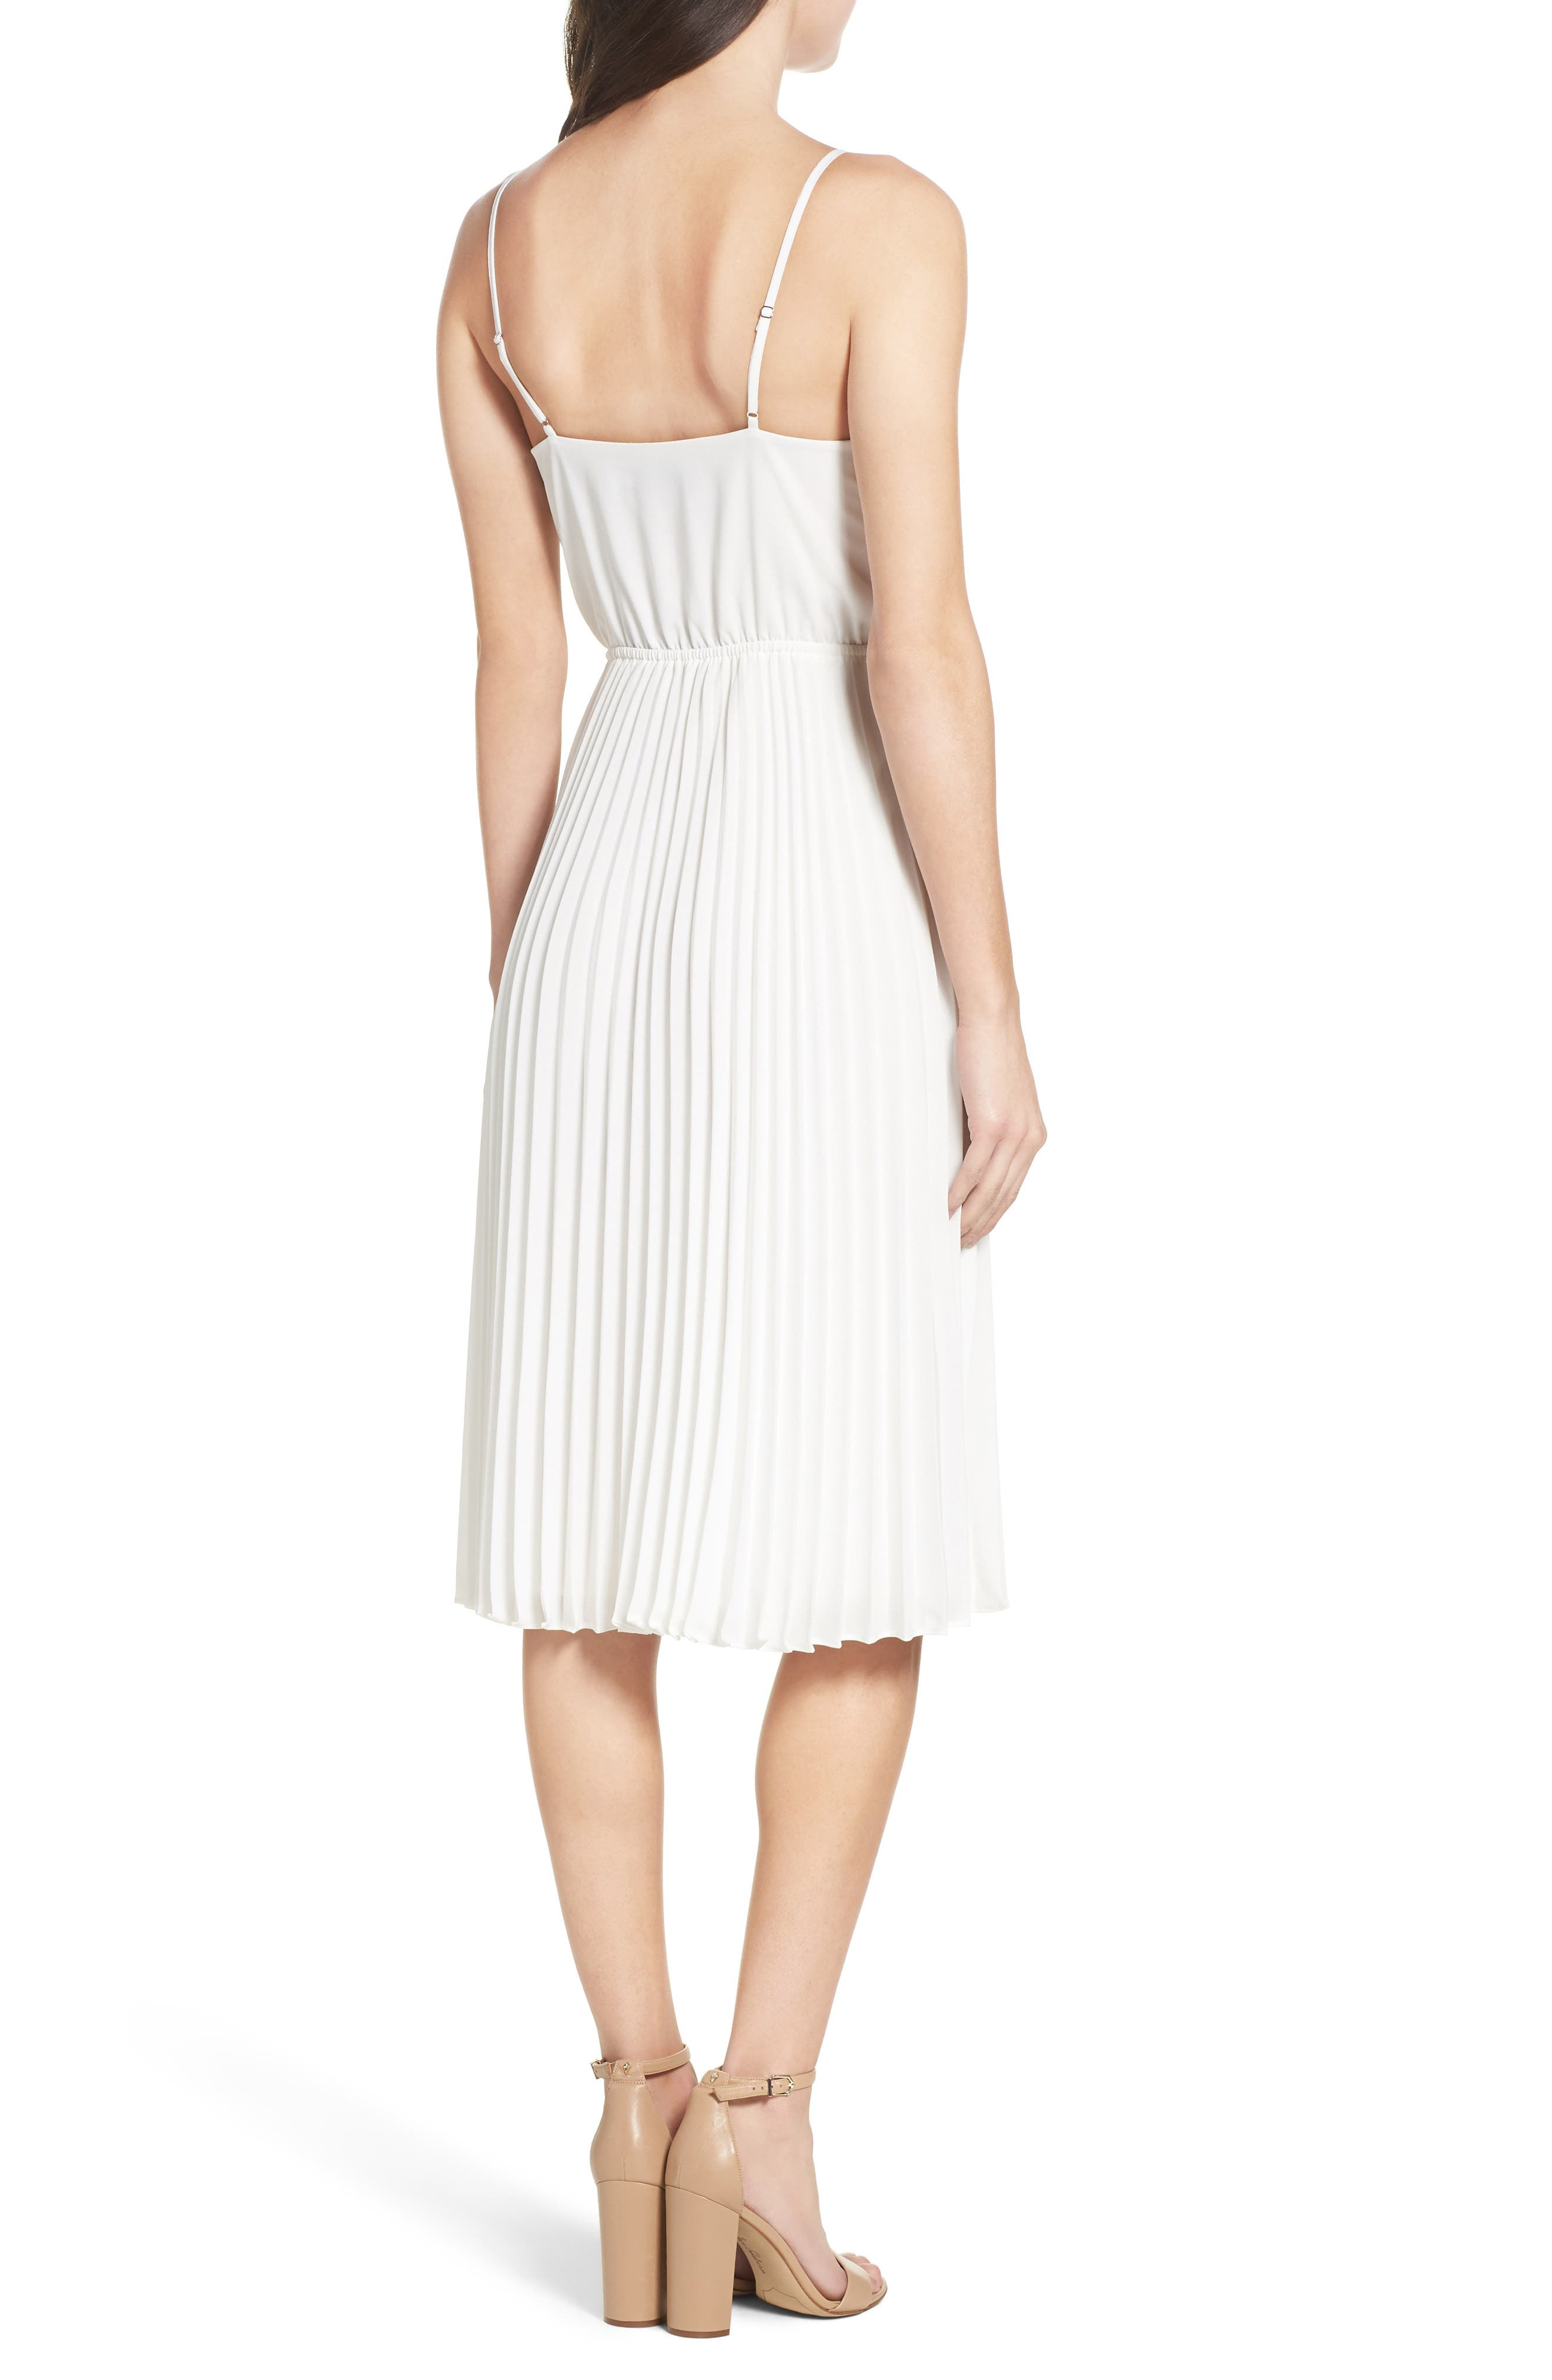 Lily Pond Fit & Flare Dress,                             Alternate thumbnail 2, color,                             WHITE